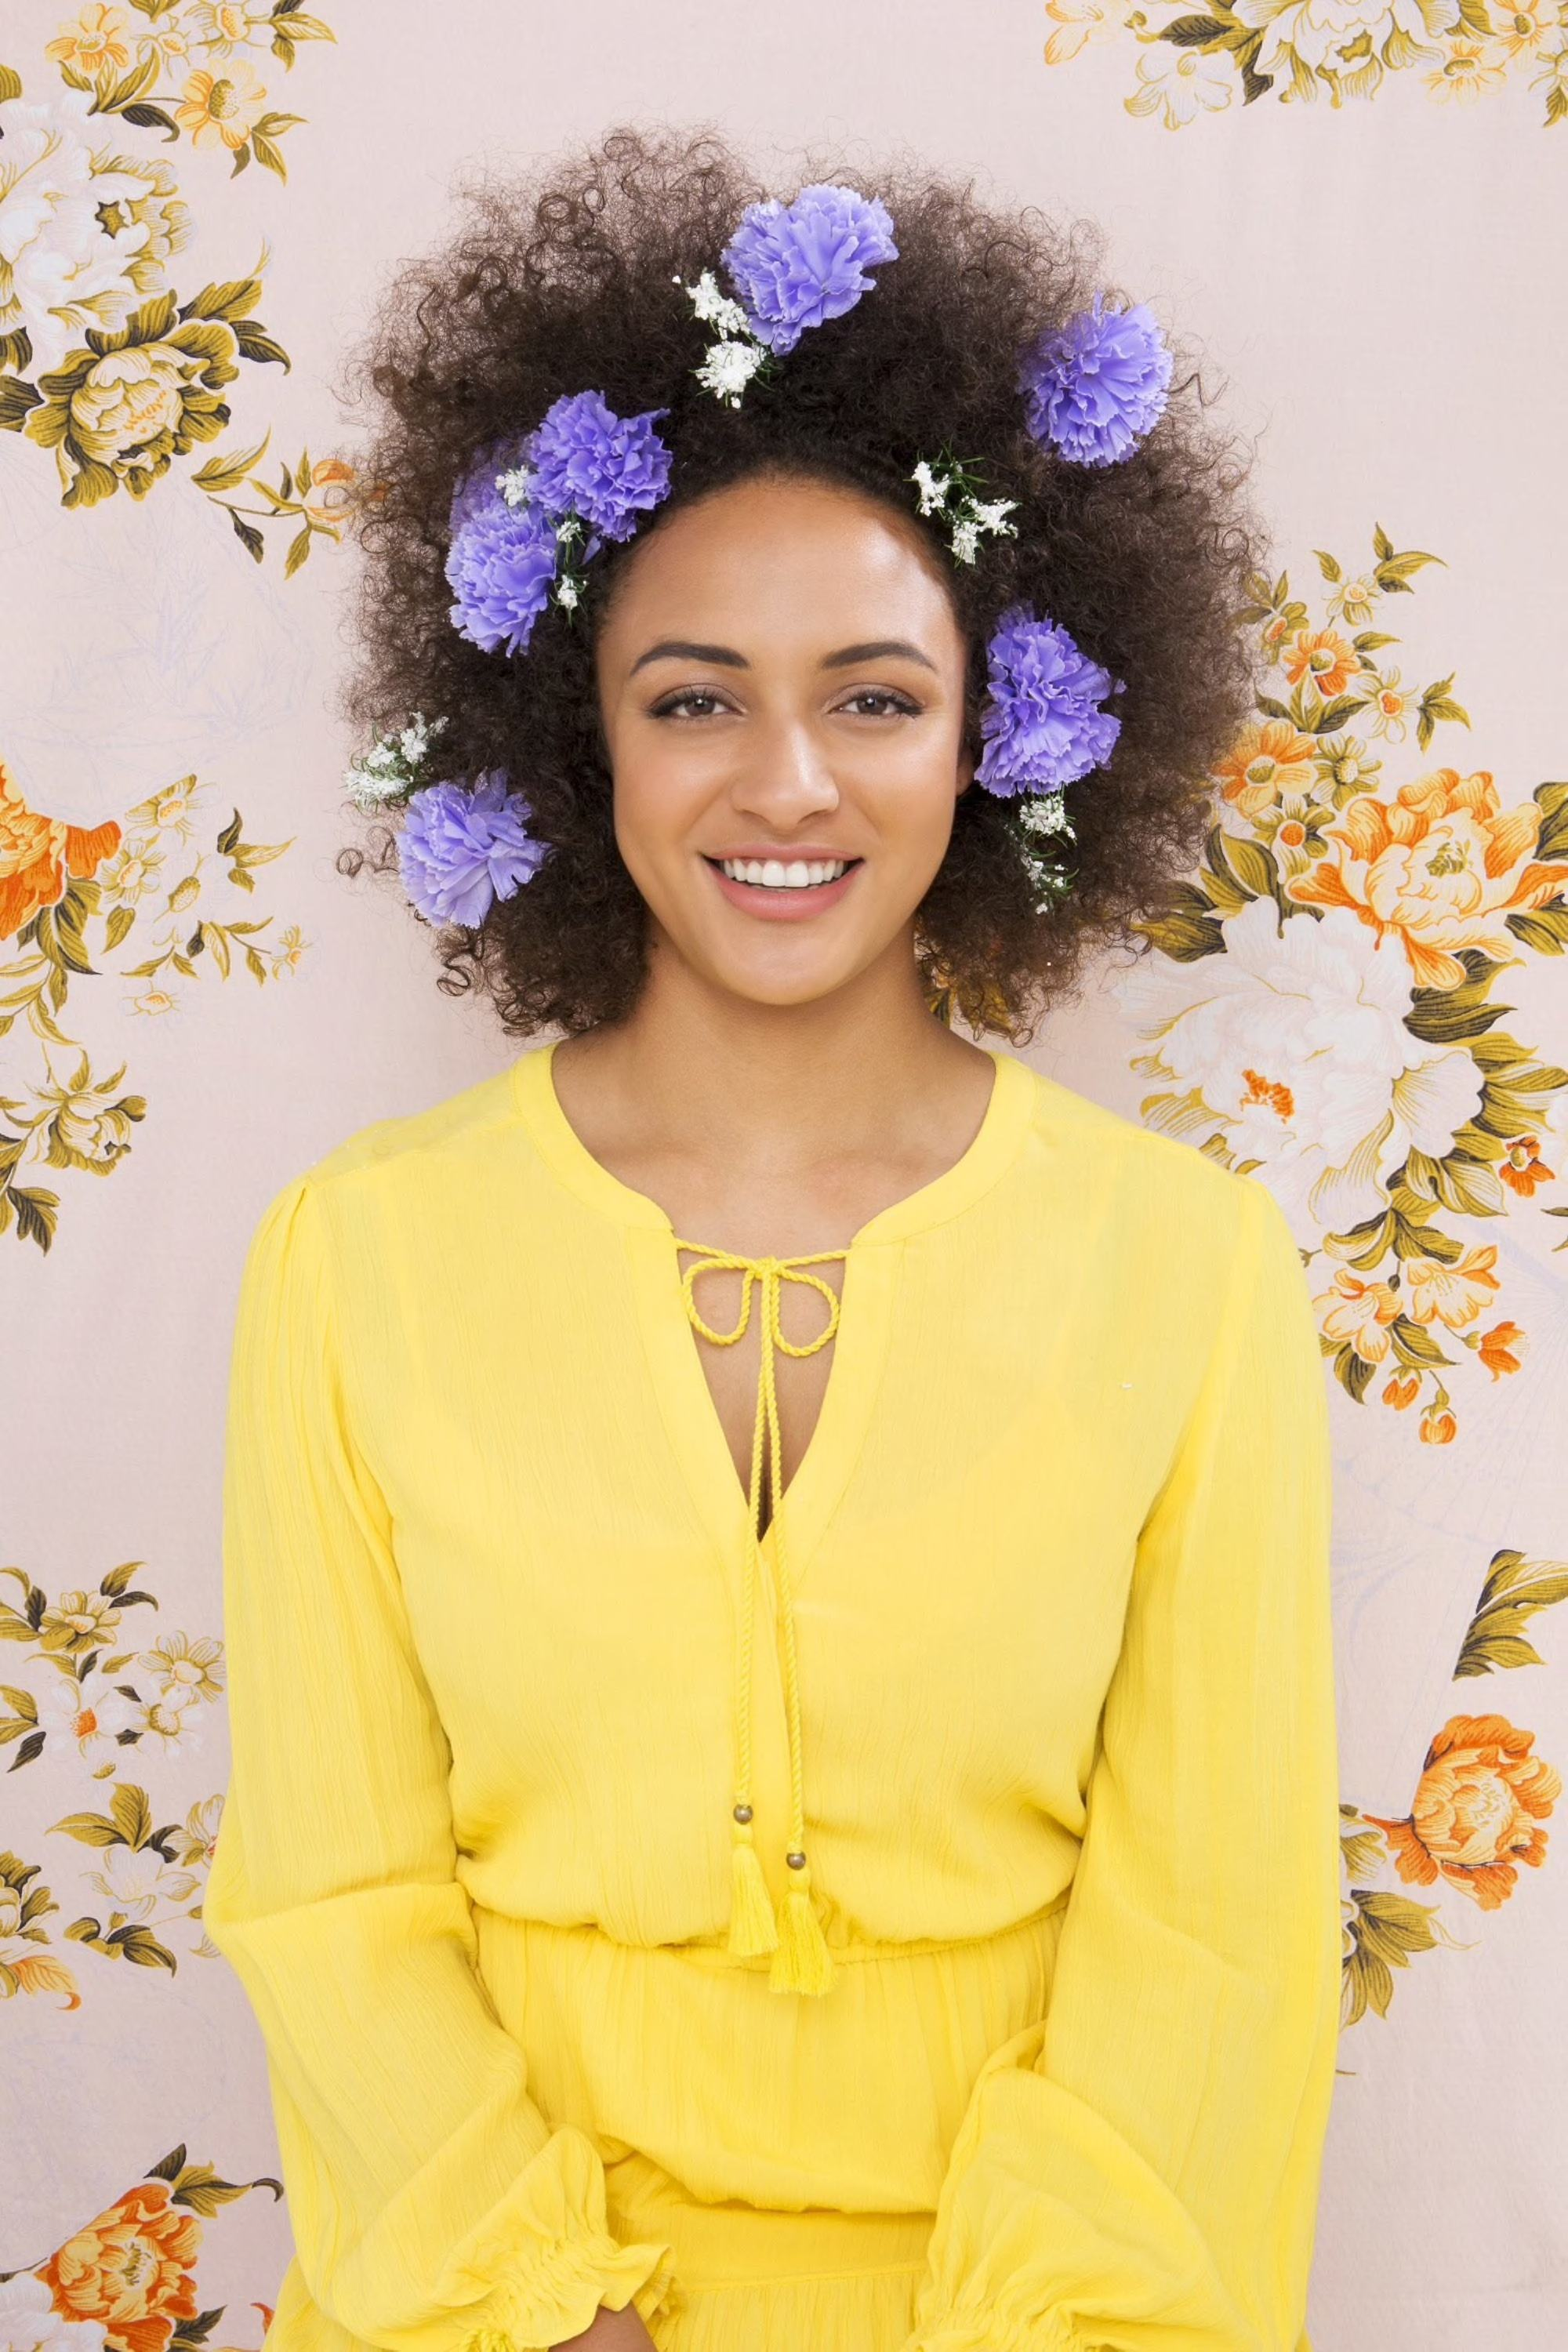 afro hairstyles with flowers